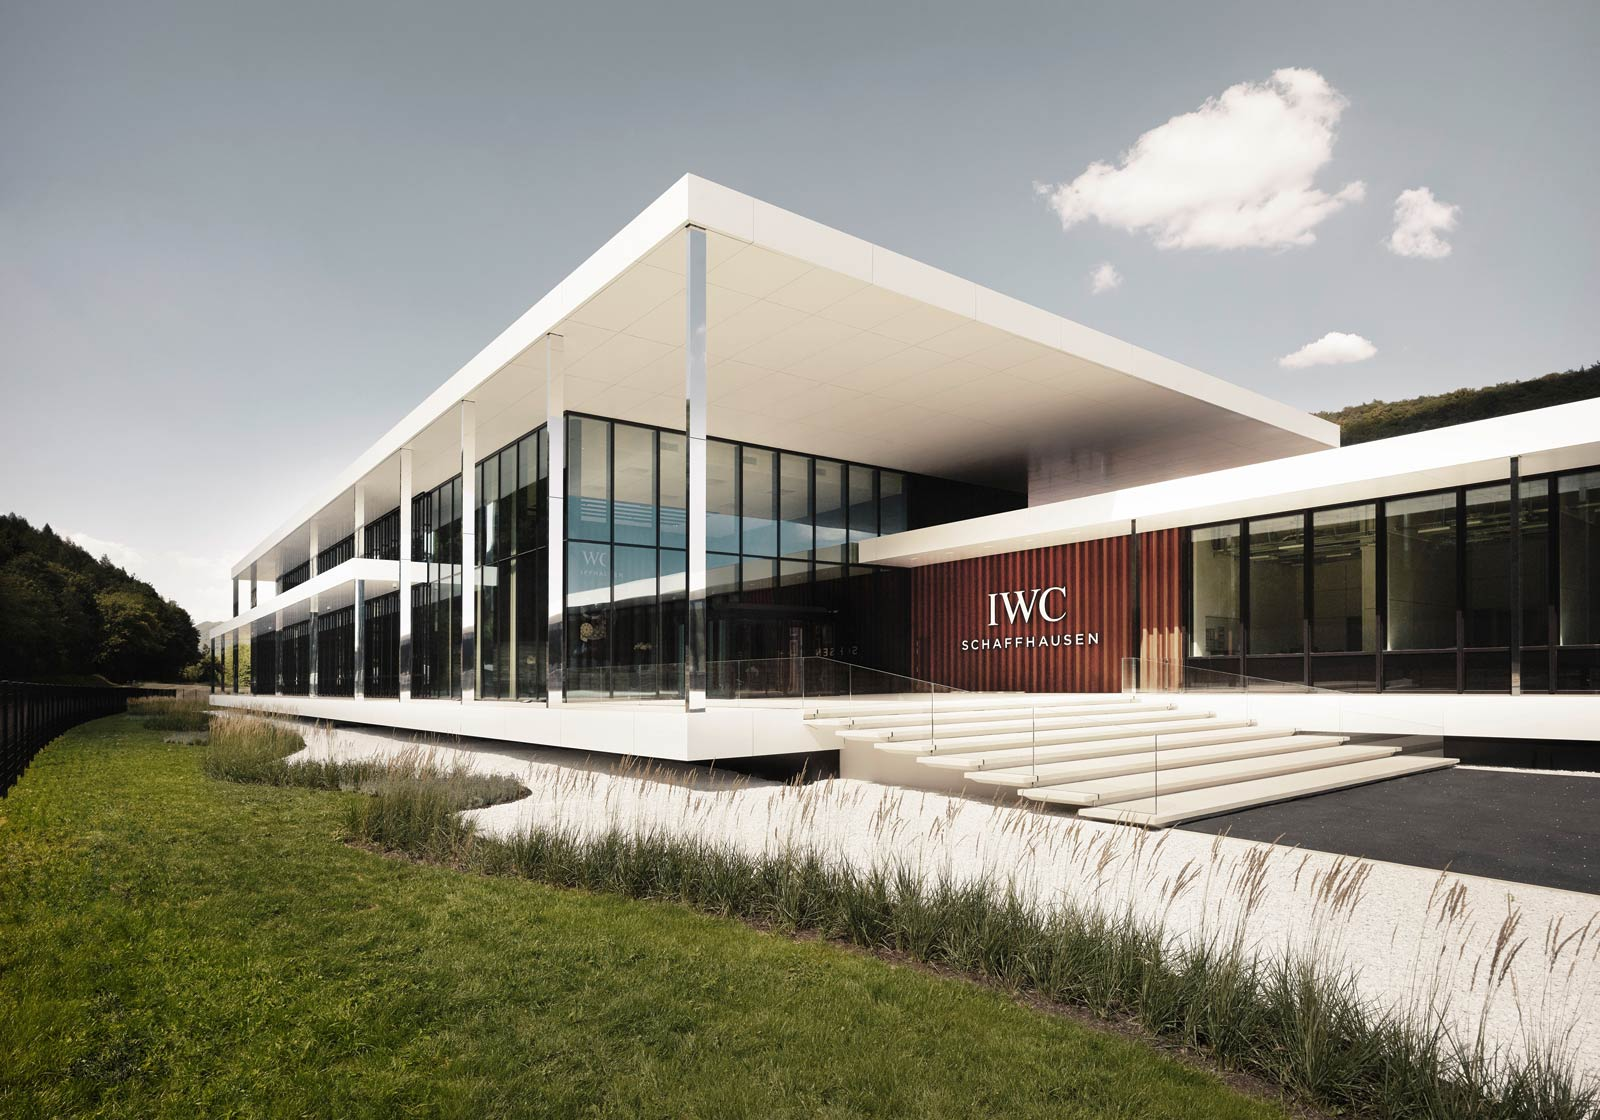 Integrally designed with BIM by ATP Zurich: The IWC Manufacturing Center. Photo: IWC Schaffhausen